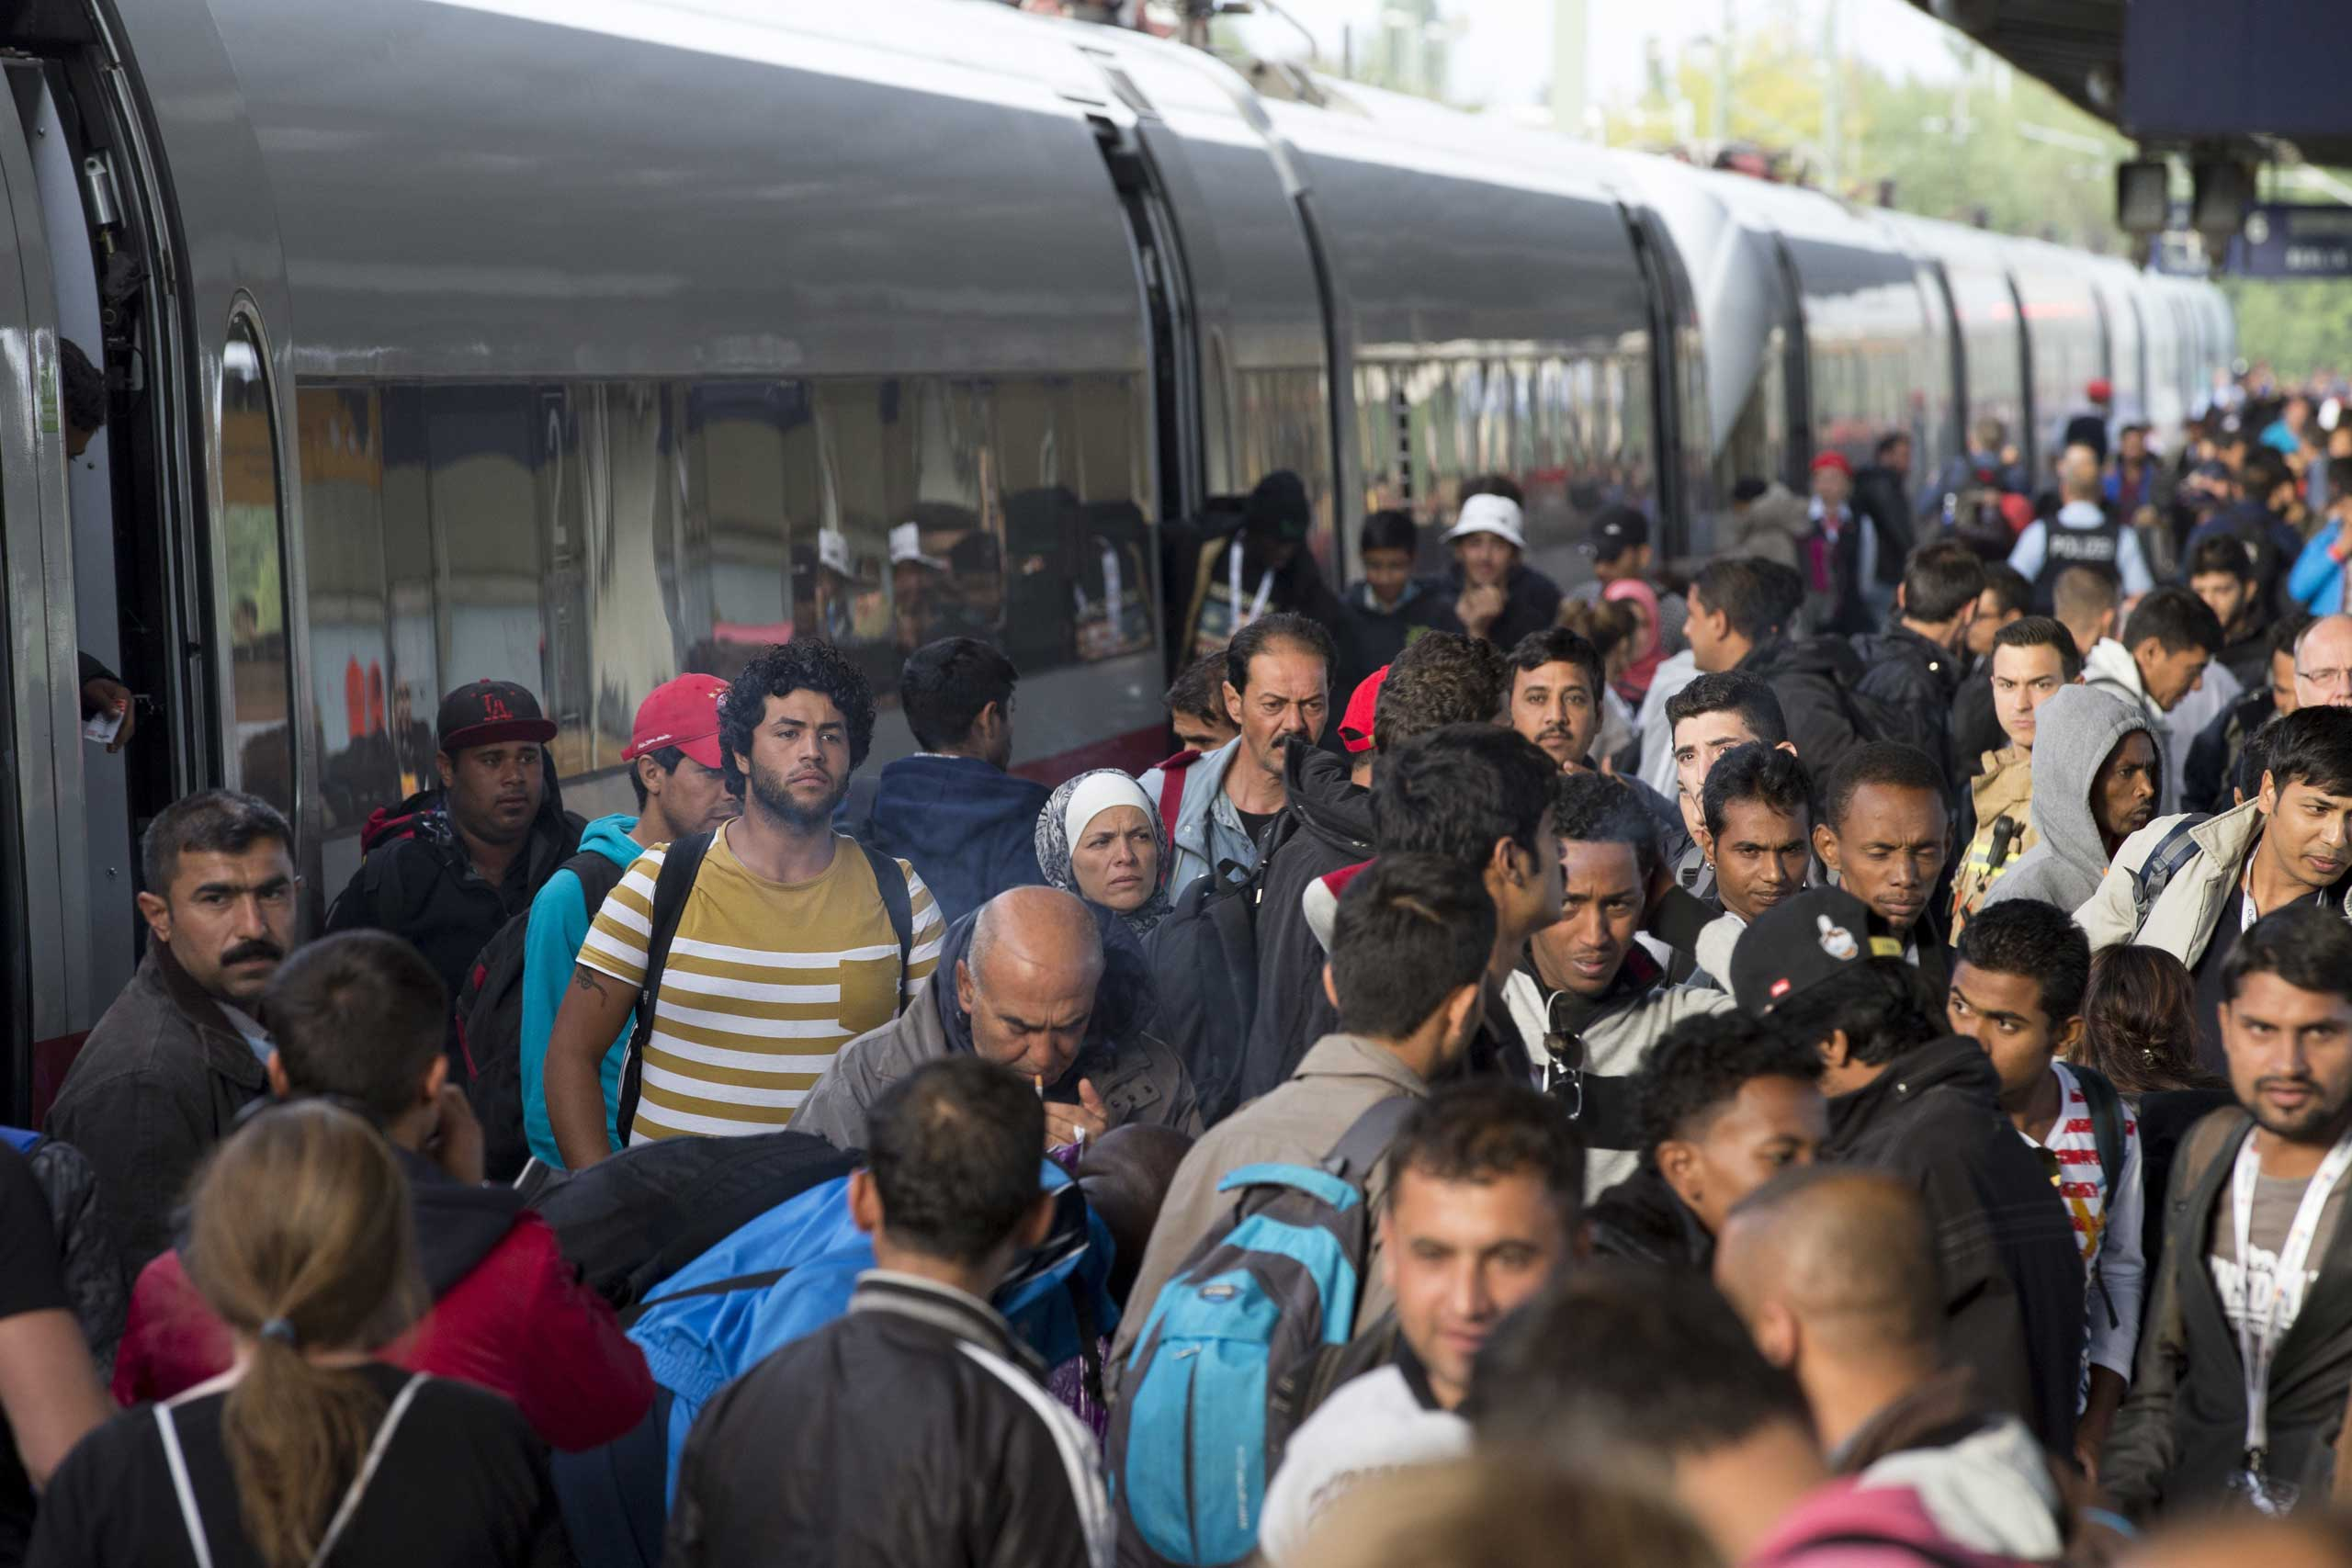 Refugees get out of a special train coming from Munich upon arrival at the railway station in Berlin Schoenefeld, on Sept. 13, 2015.